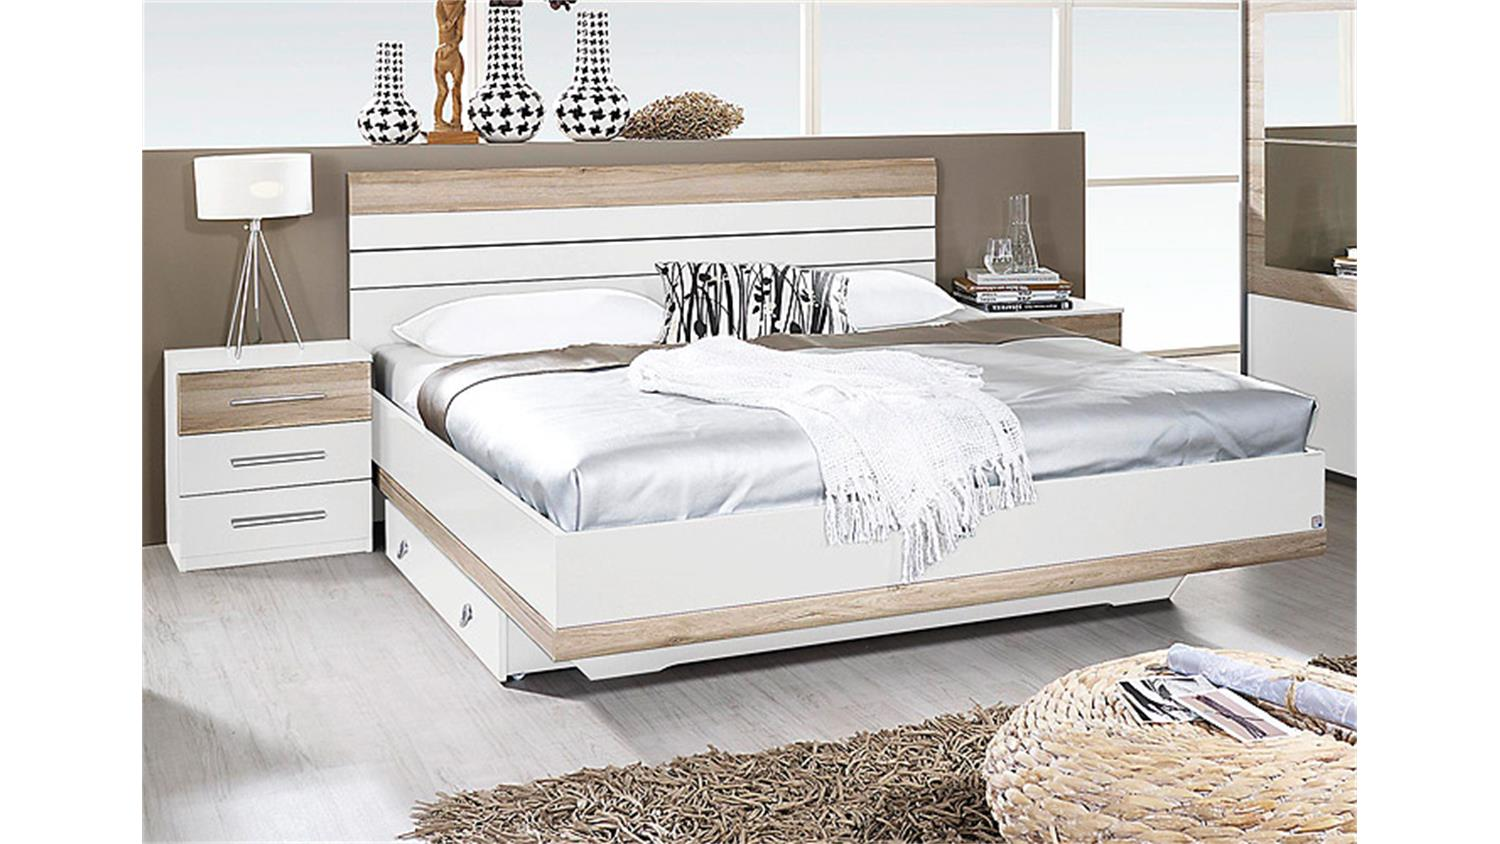 bettanlage tarragona wei eiche sanremo hell 180x200 cm. Black Bedroom Furniture Sets. Home Design Ideas